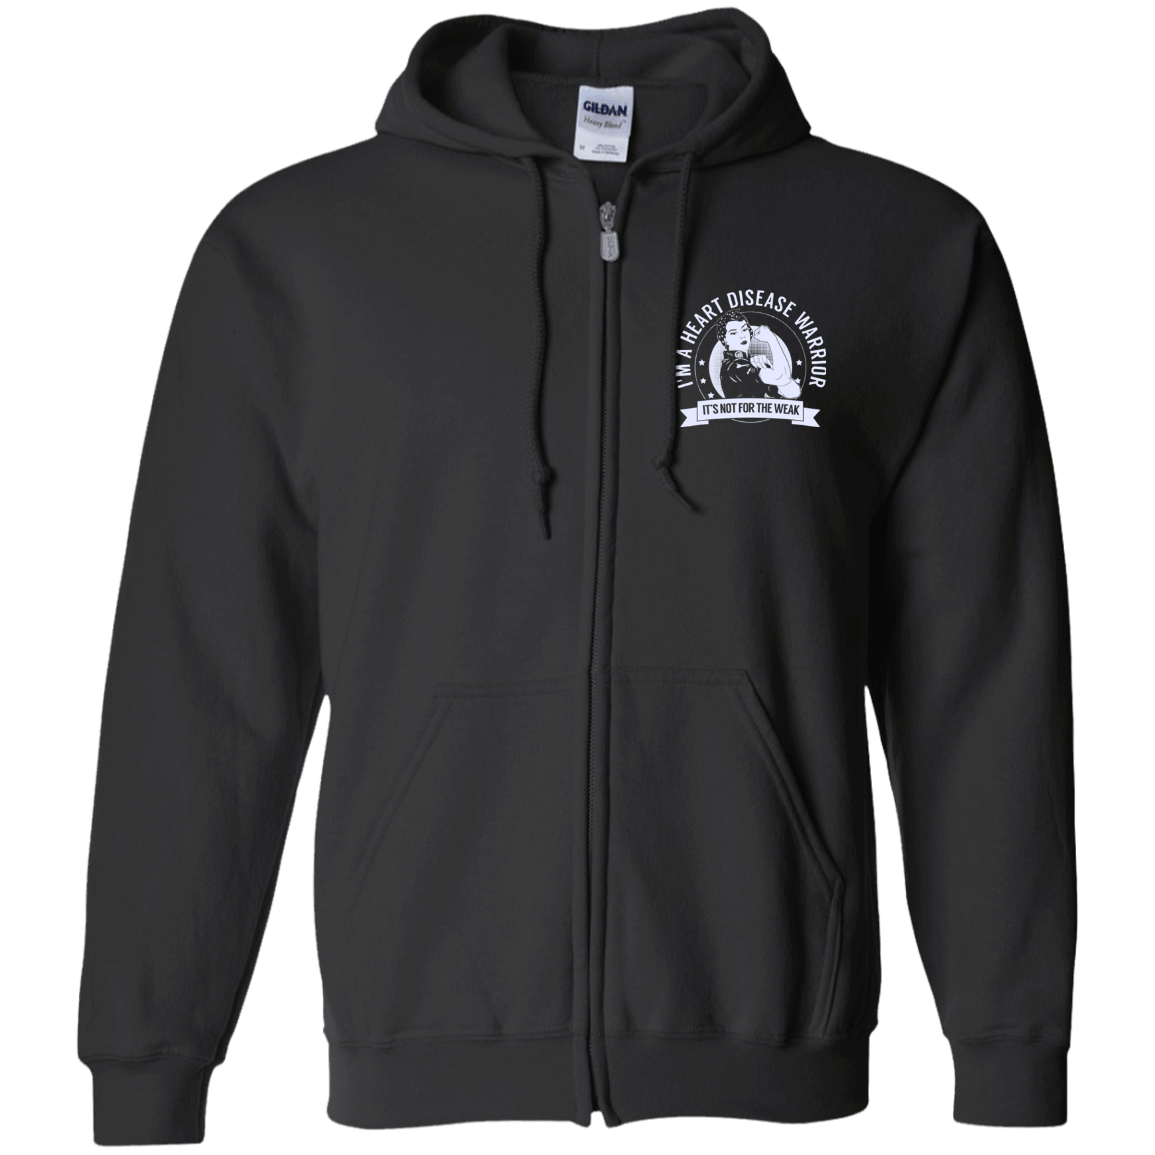 Heart Disease Warrior NFTW Zip Up Hooded Sweatshirt - The Unchargeables